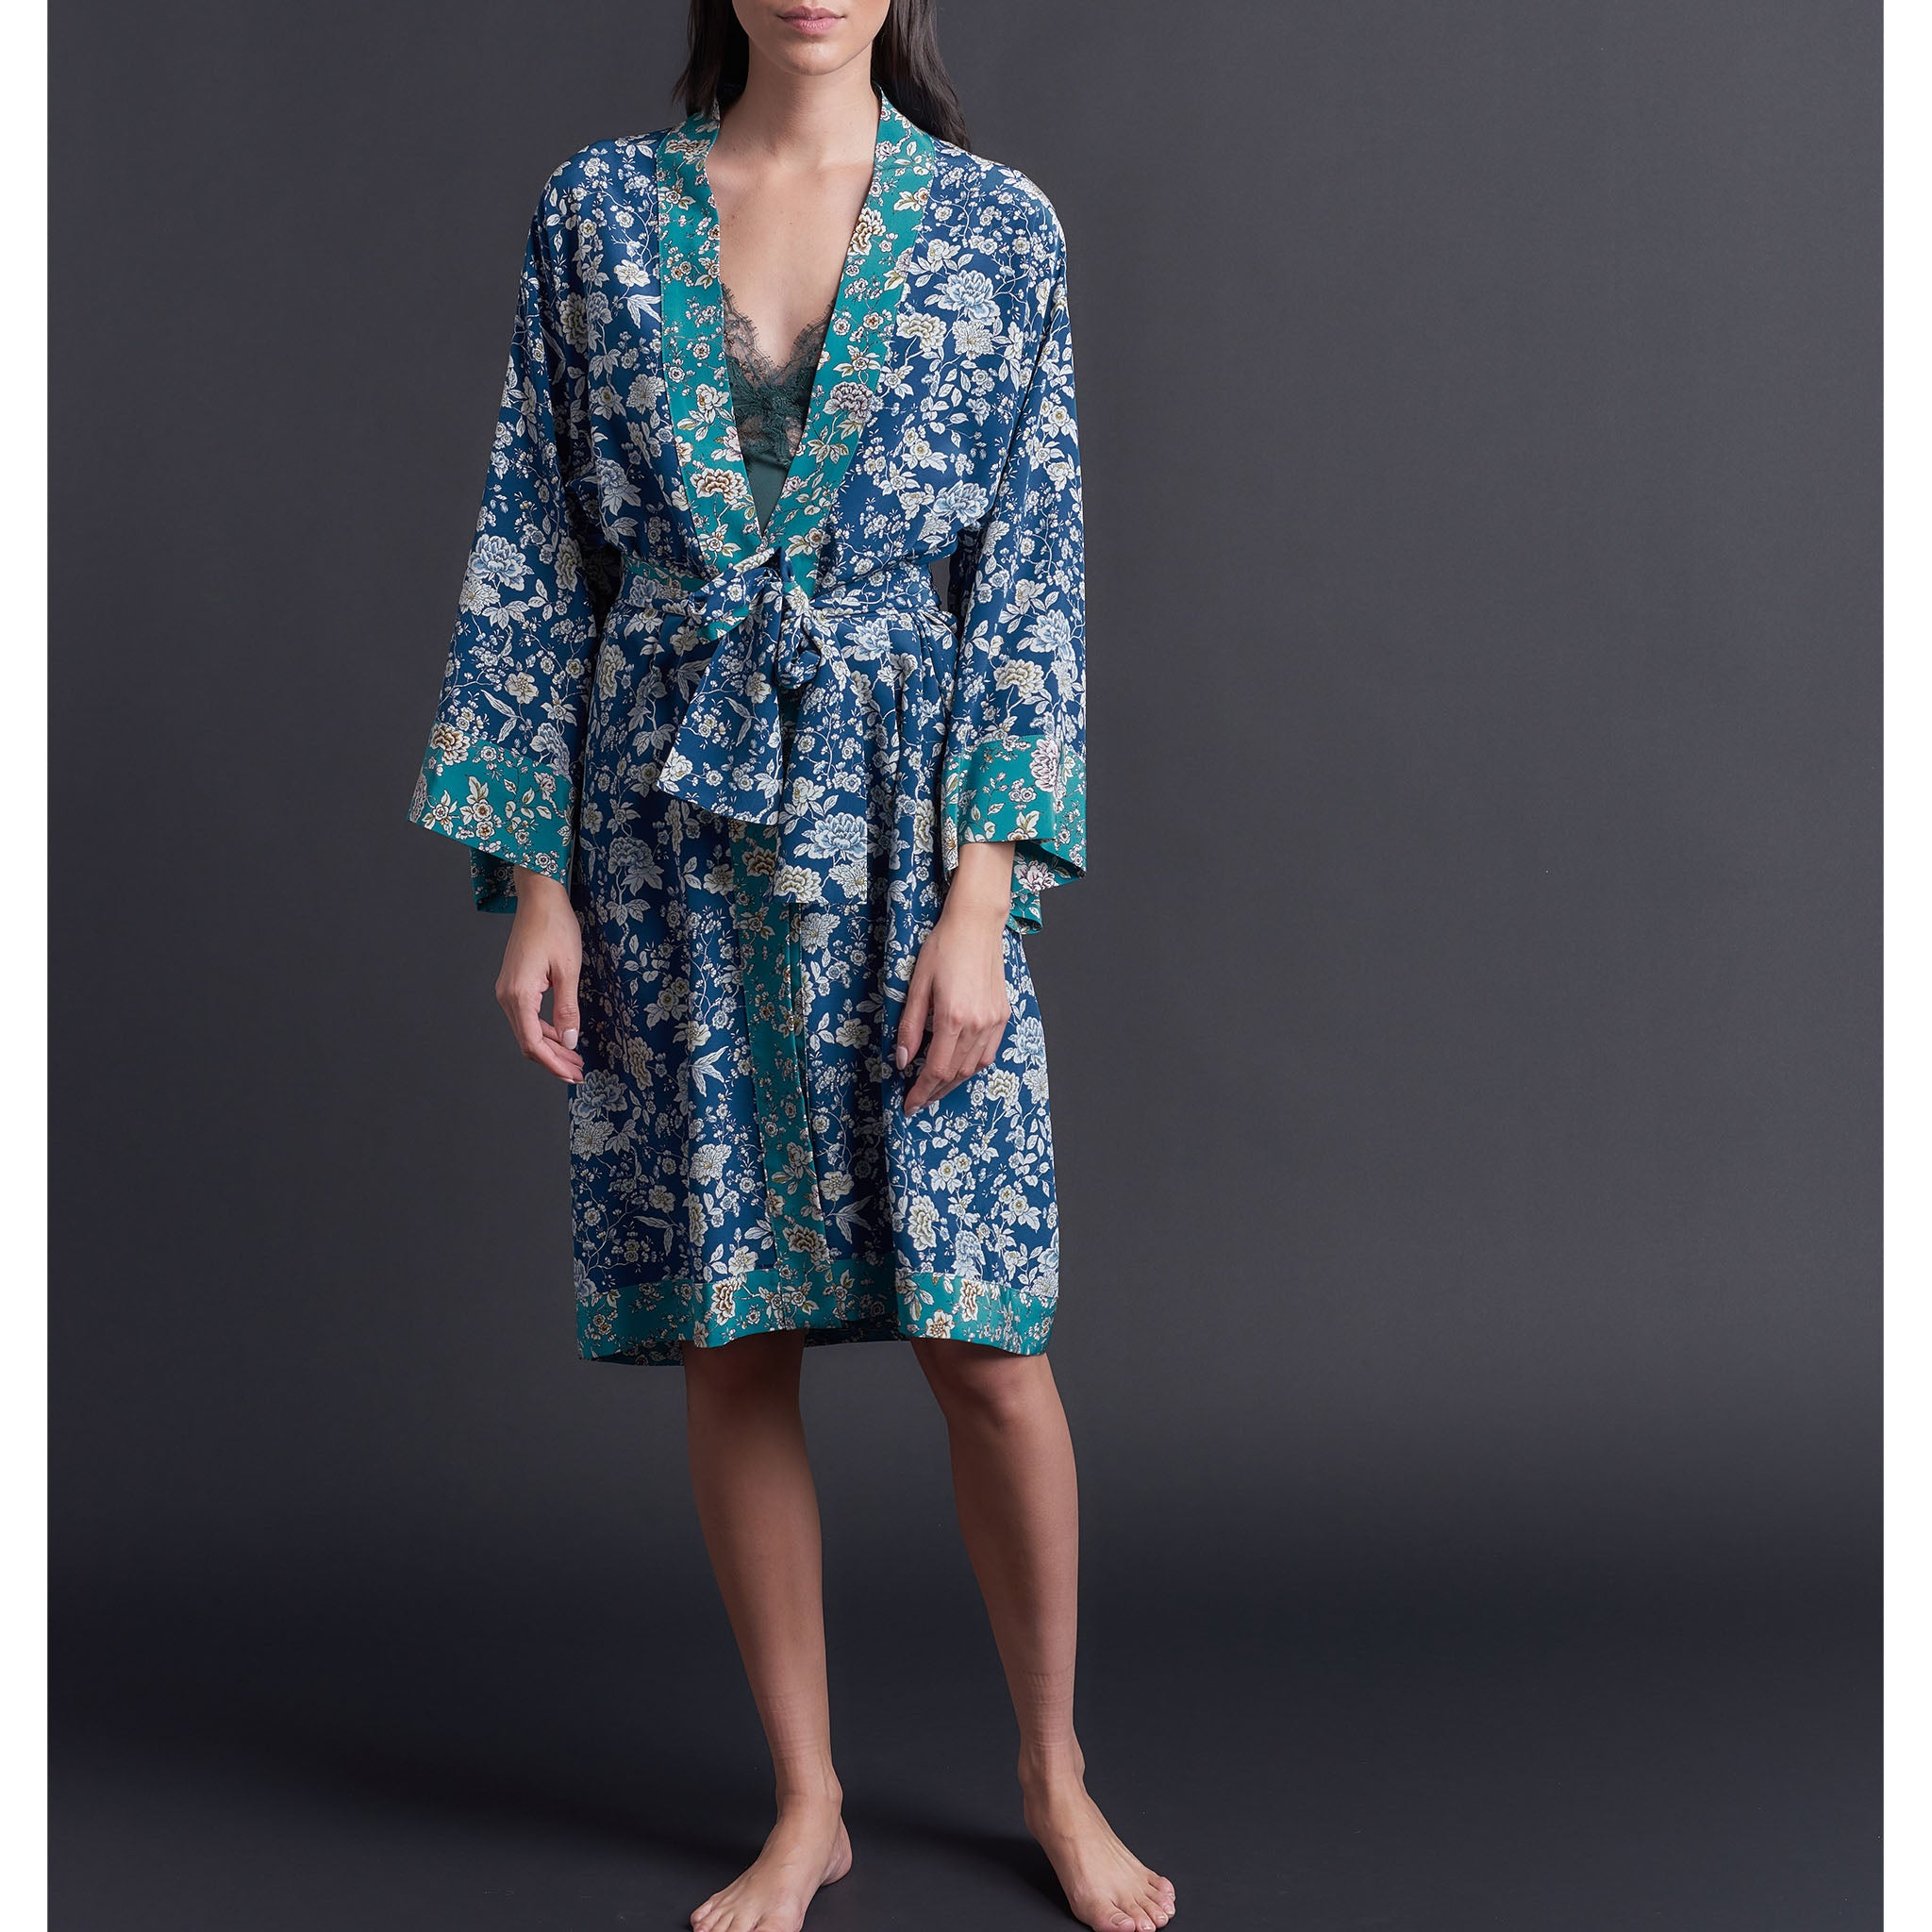 Selene Dressing Gown in Print Block Ceremony Liberty Silk Crepe De Chine